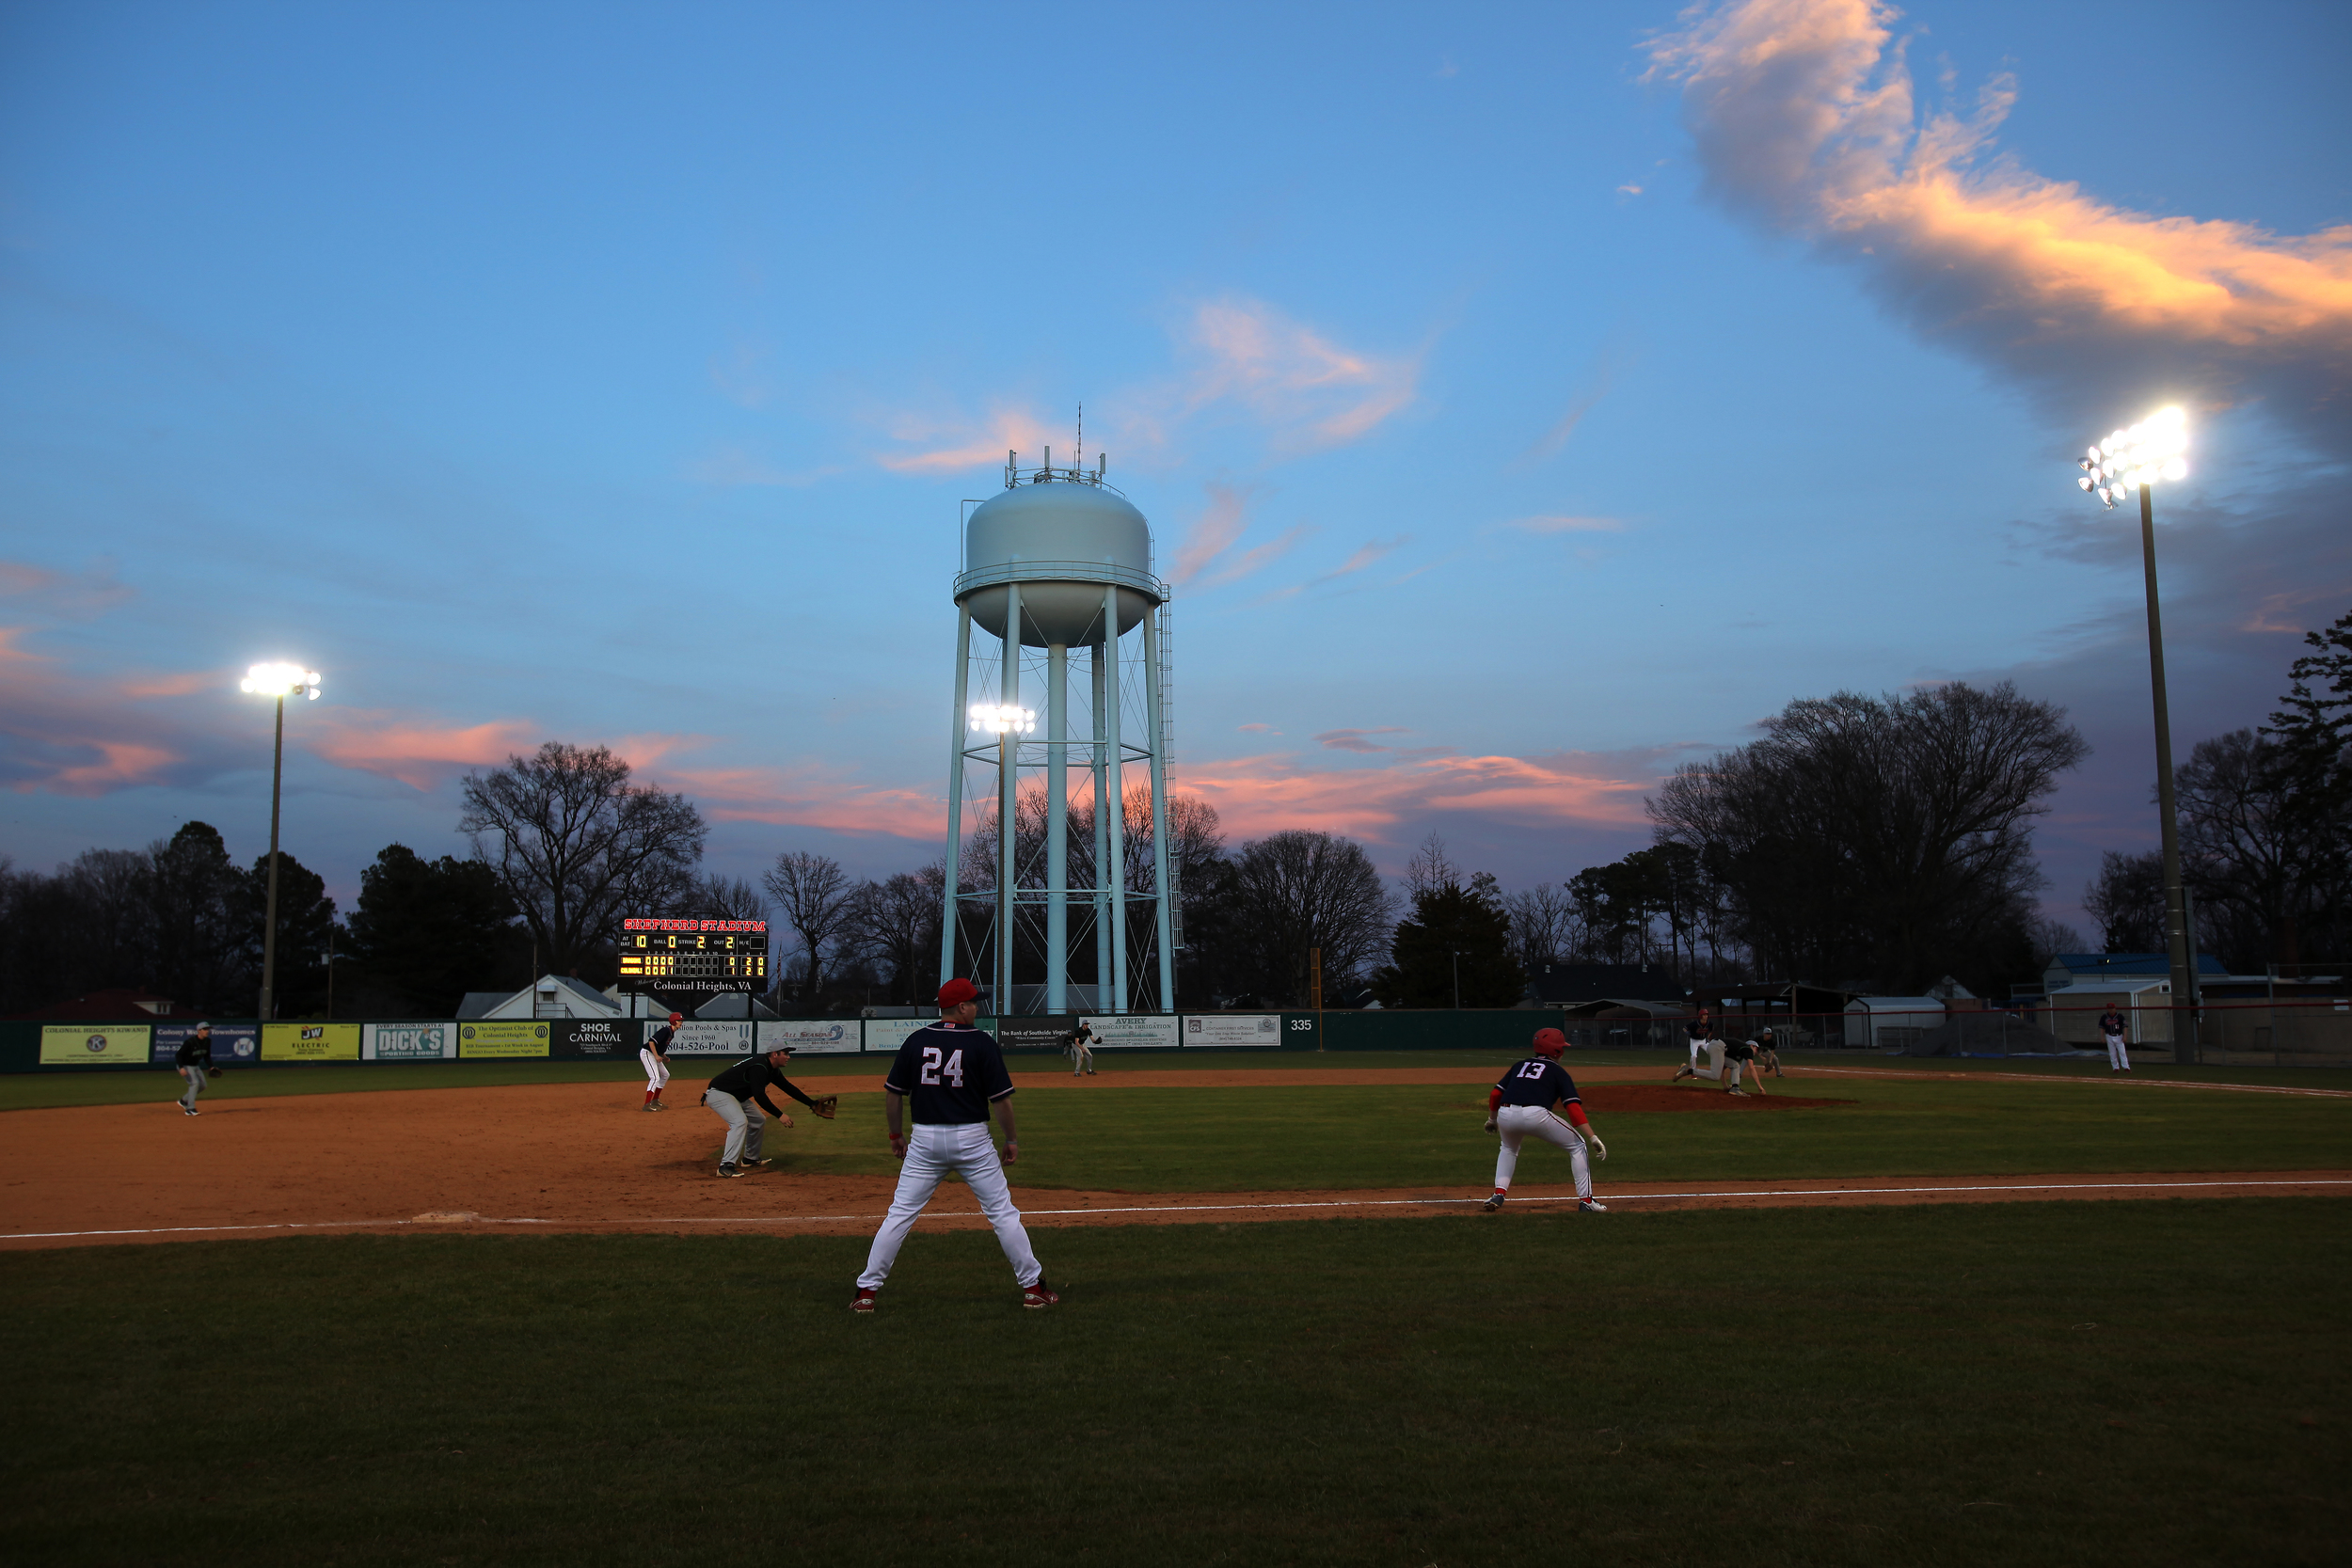 Opening night at Shepherd Stadium in Colonial Heights in early March.